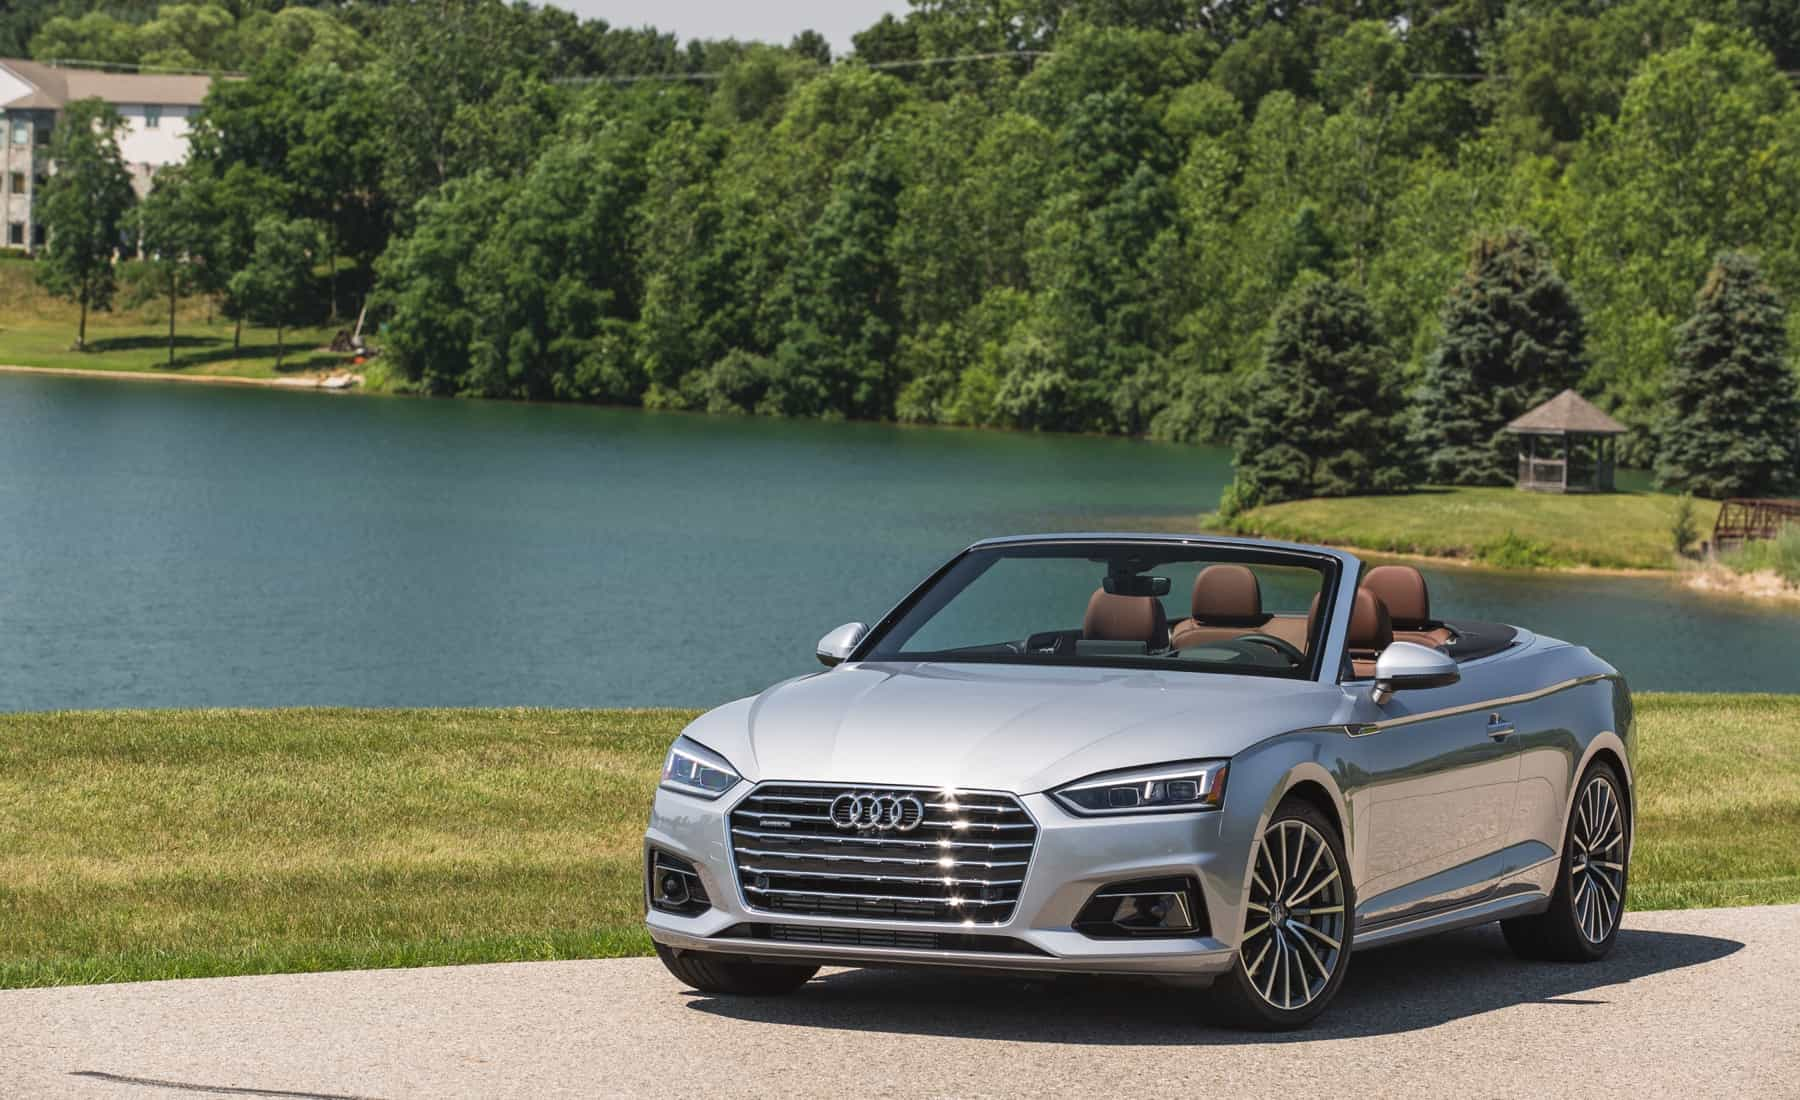 2018 Audi A5 Cabriolet Exterior Roof Open (Photo 4 of 45)